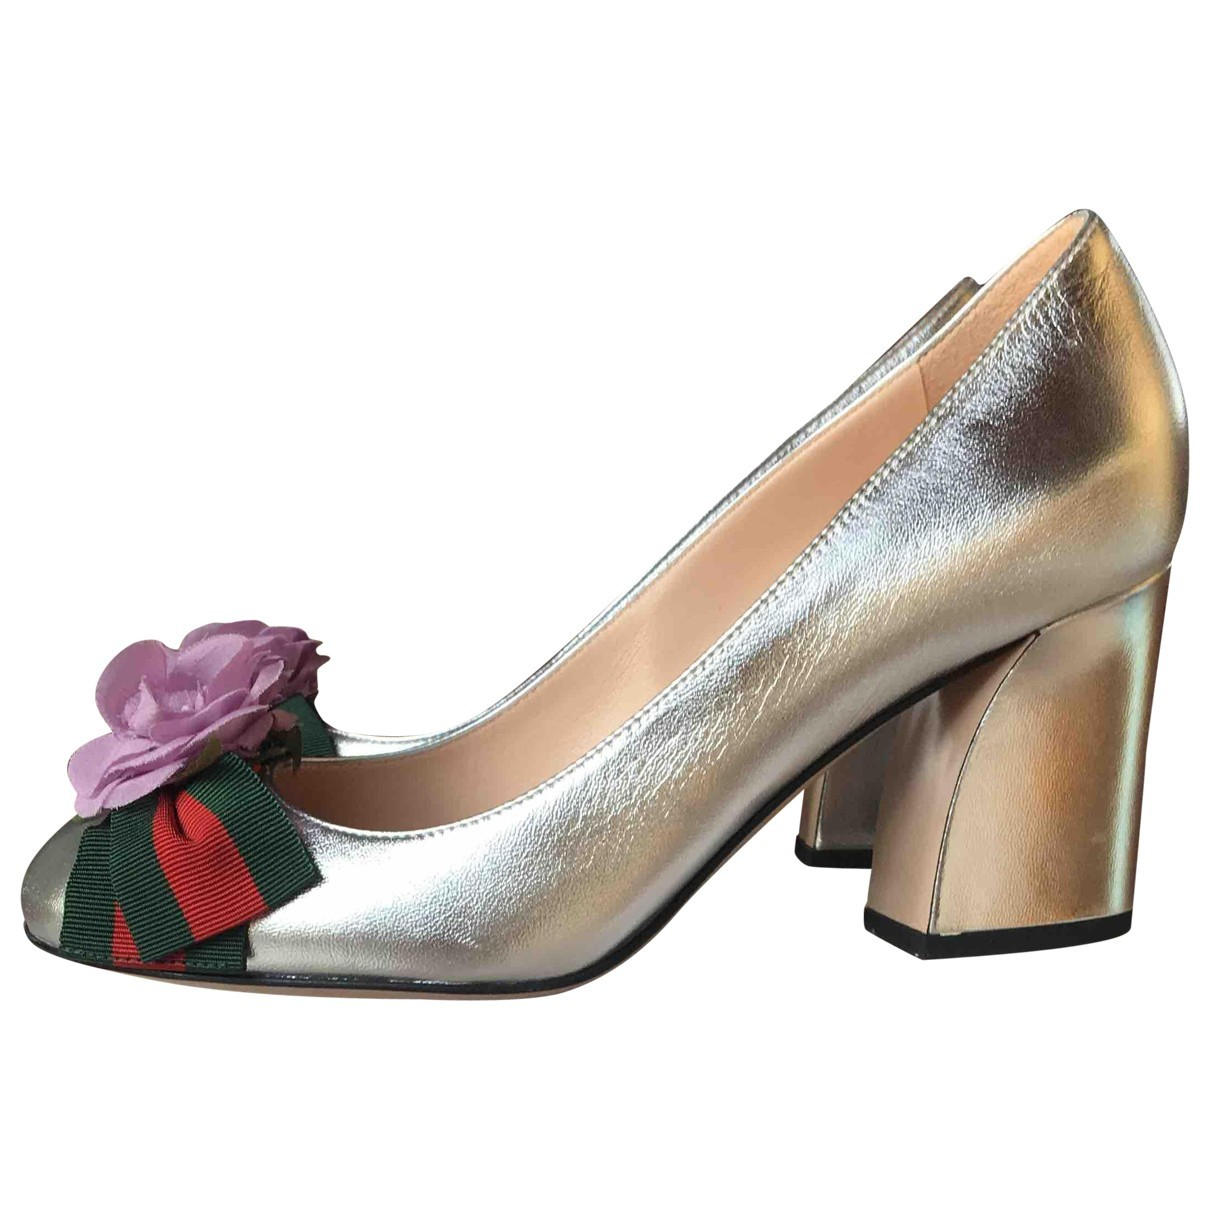 Gucci \N Silver Leather Heels for Women 36 EU